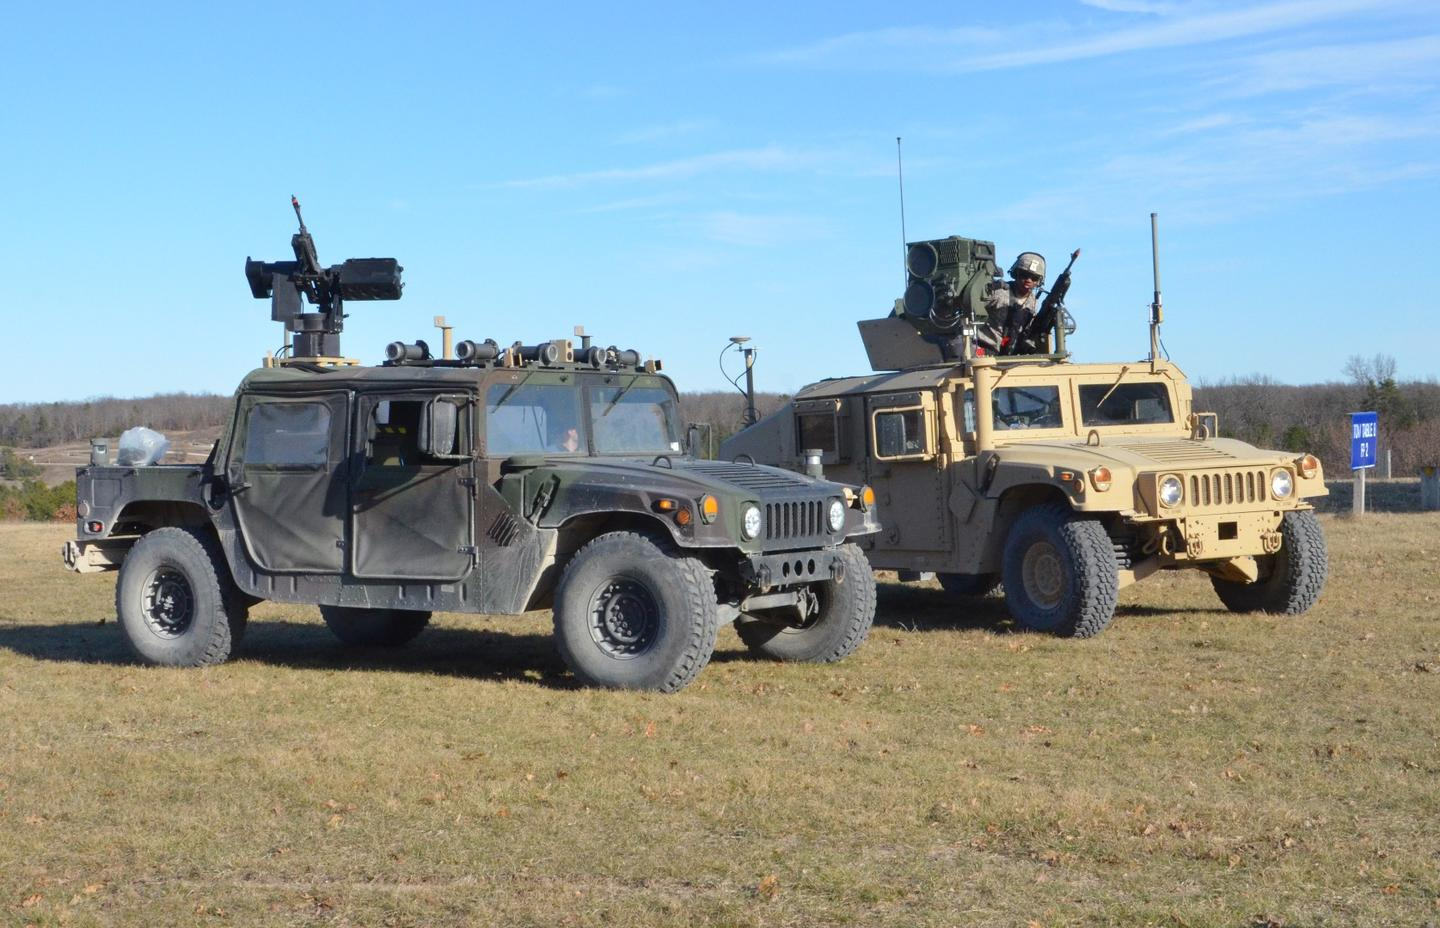 Two vehicles from the new 'Wingman' US autonomous weapons program